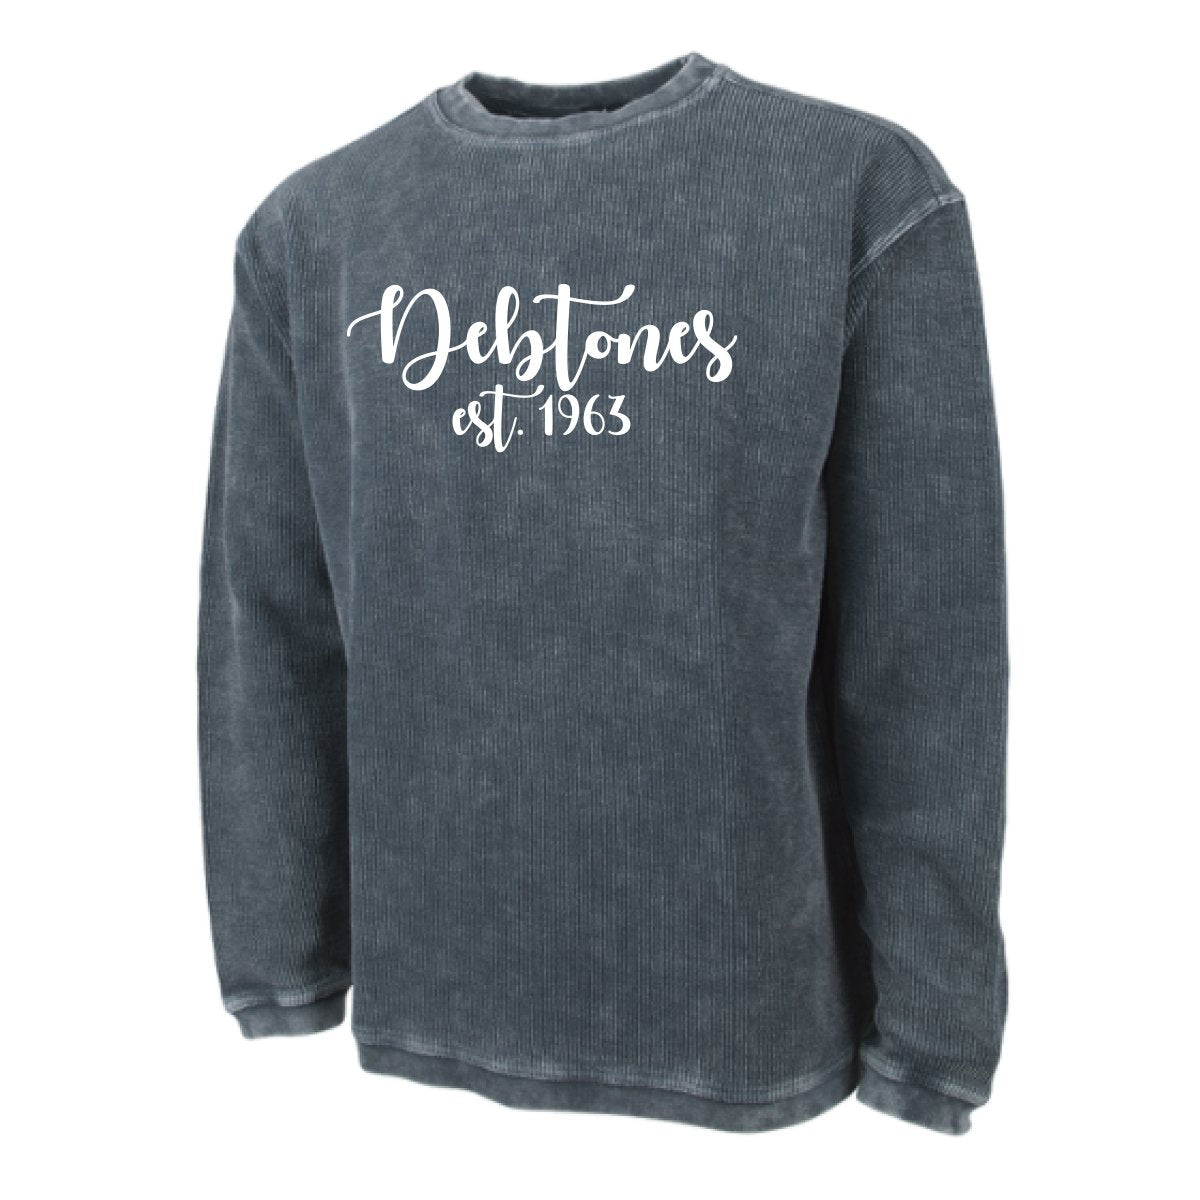 Debtones Corded Crew Sweatshirt